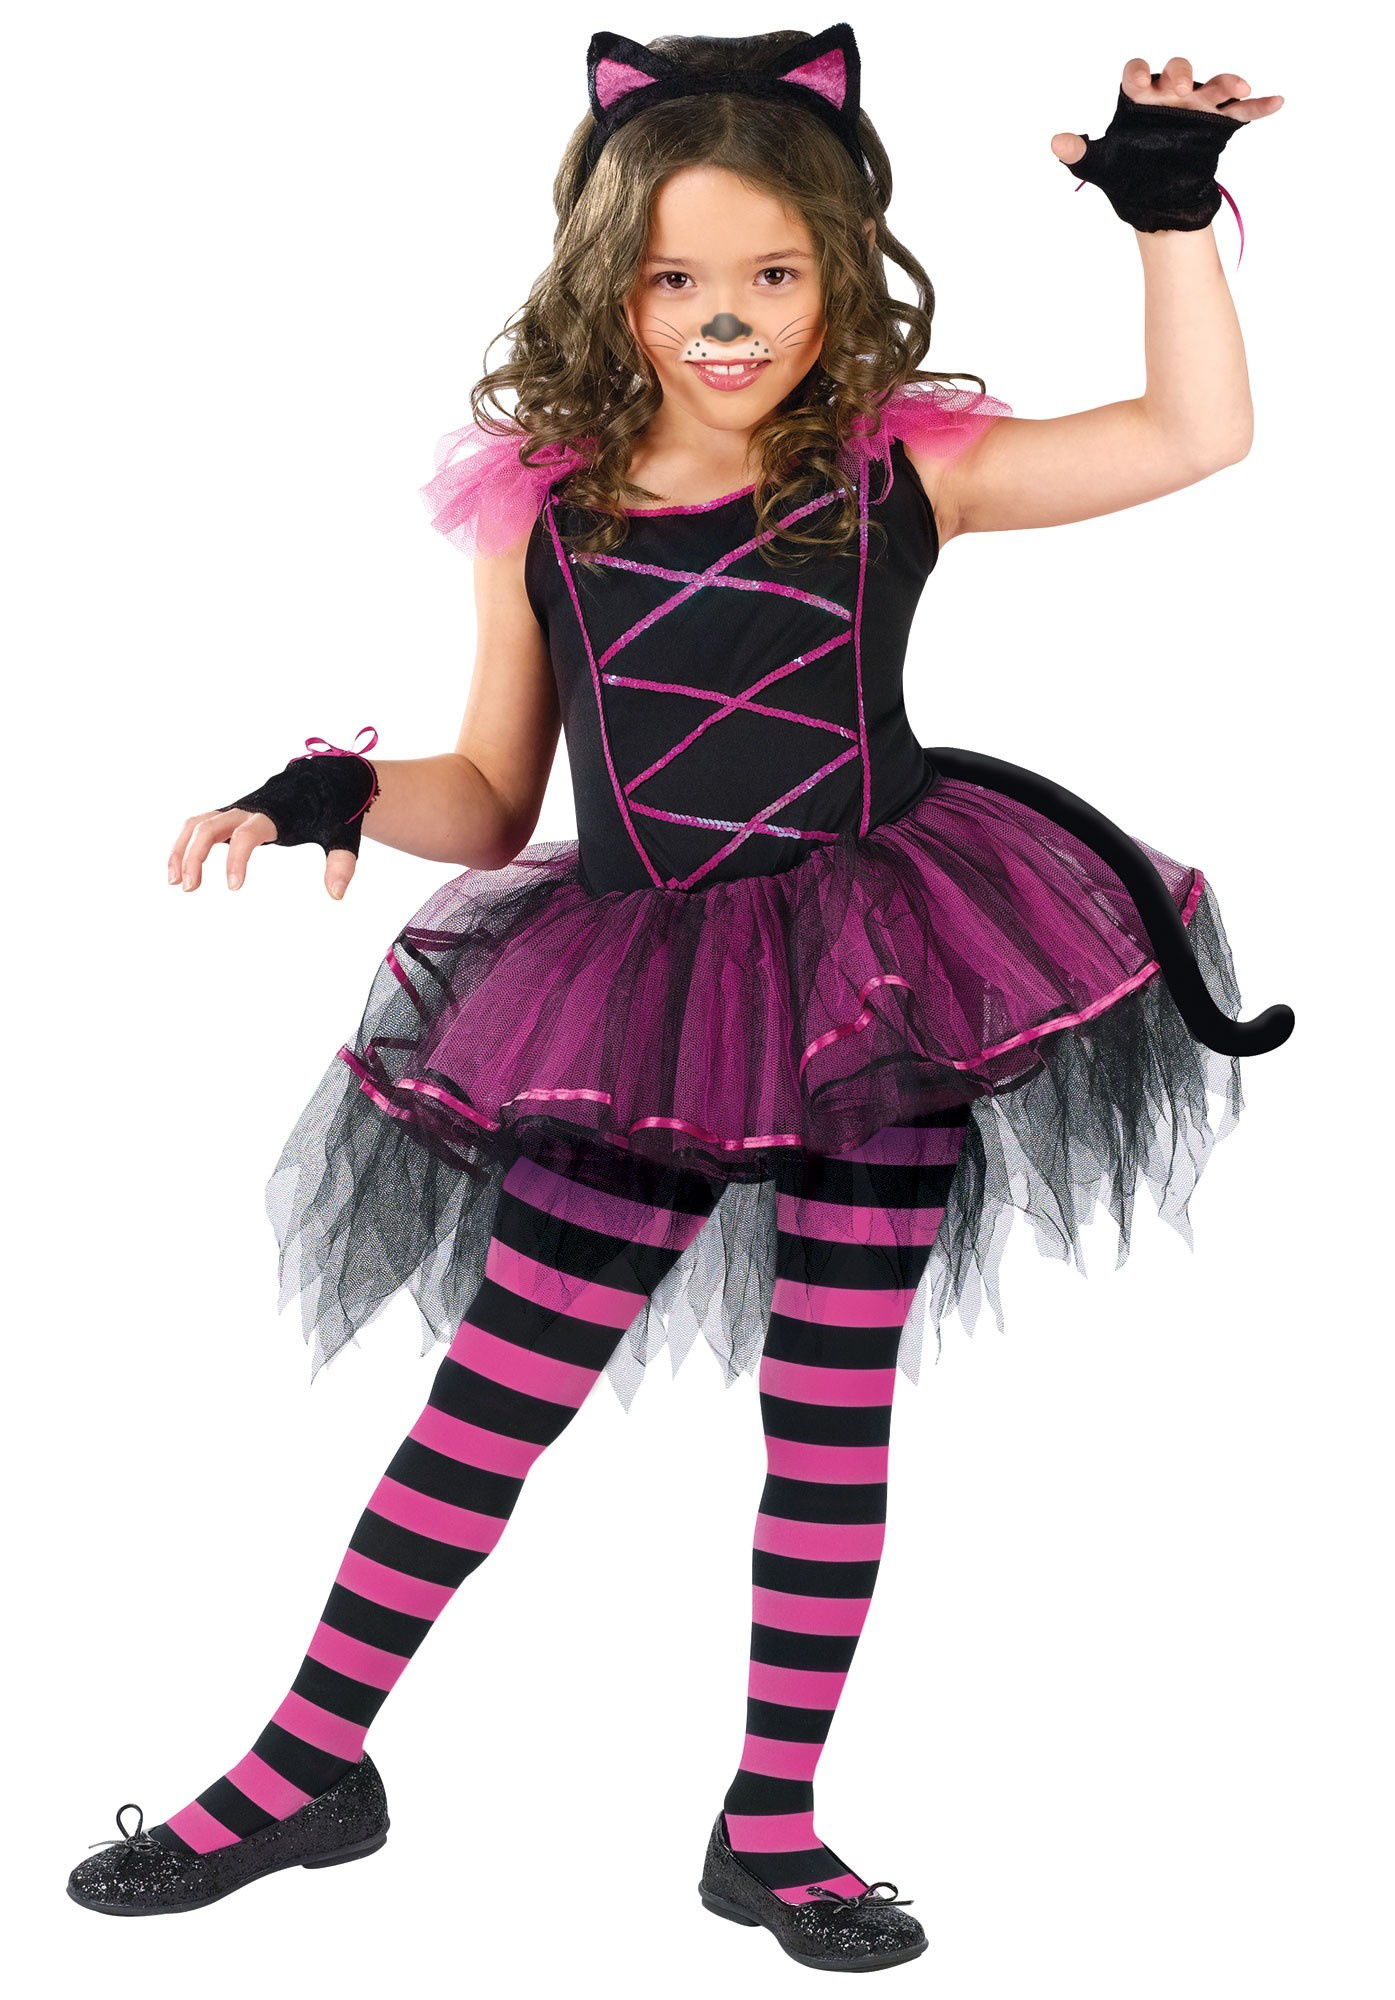 These DIY cat Halloween costumes for girls and boys are paws-itively adorable! The no-fuss look comes together with just a few pieces (cat ears, a cat tail, and cat makeup), making it a purr-fect last-minute costume for kids or adults.